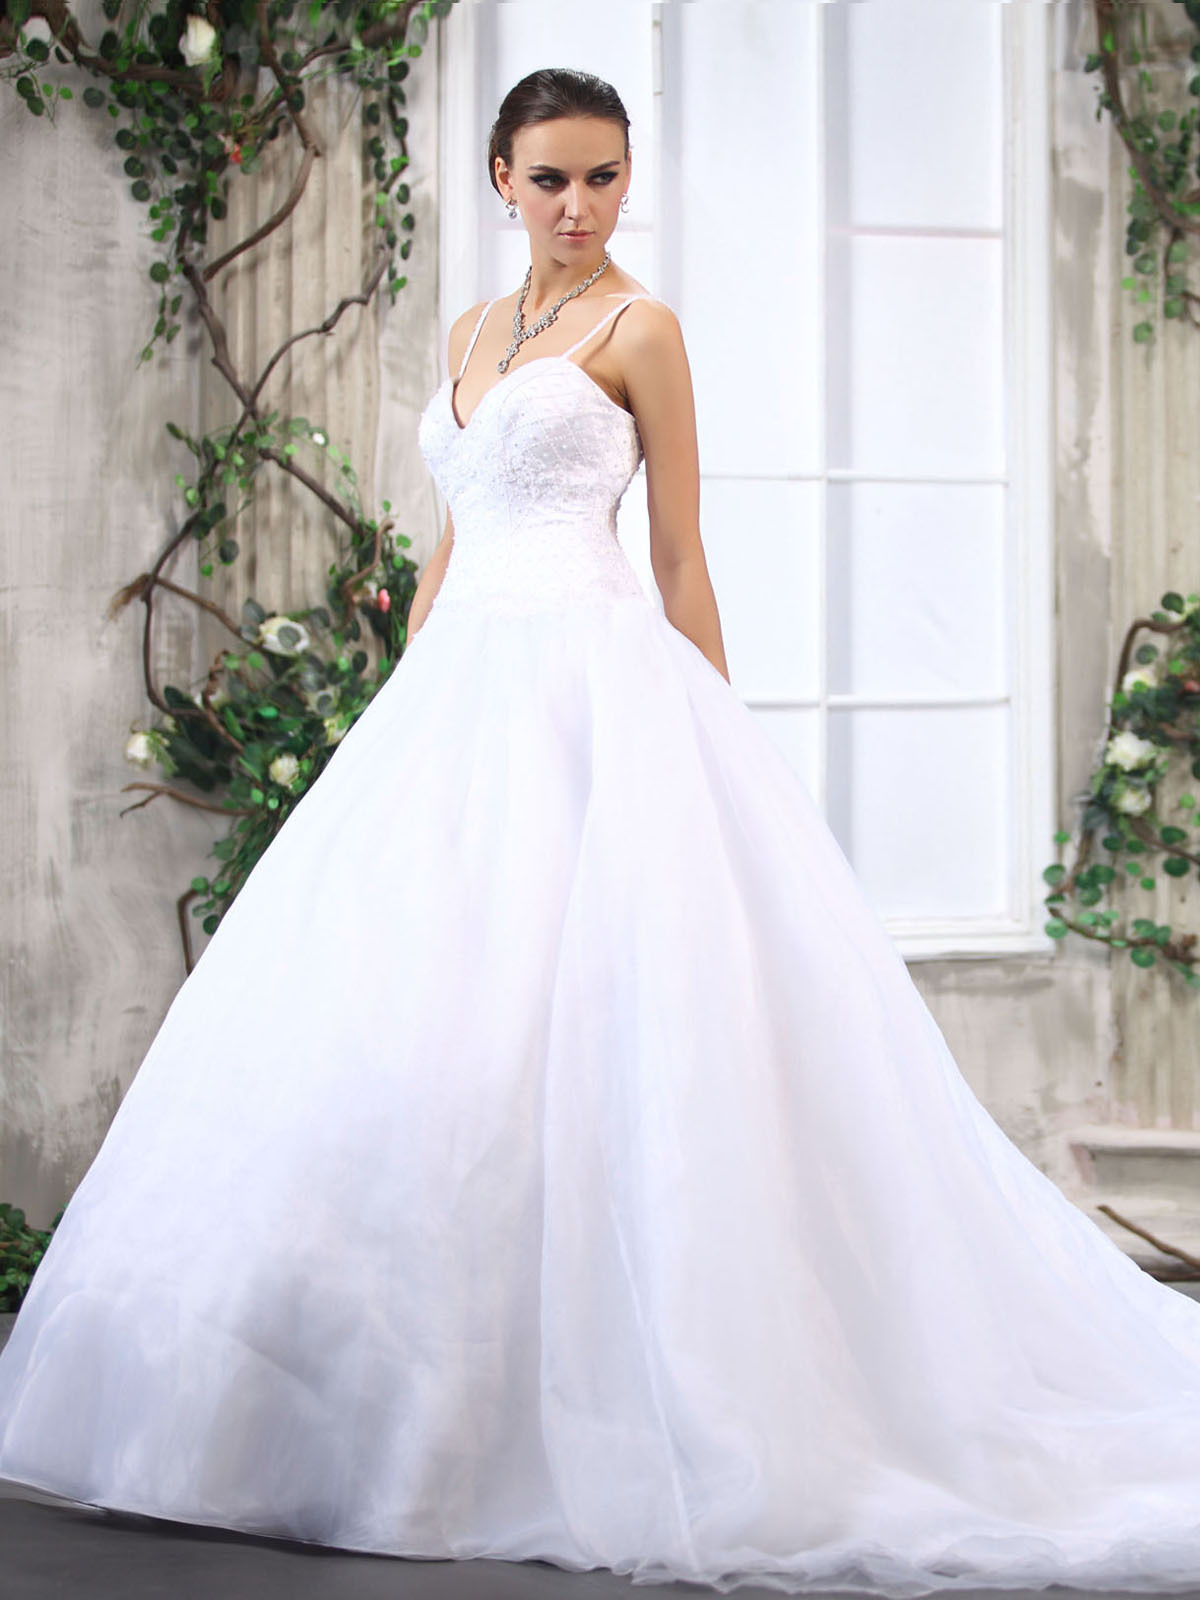 organza wedding dress with spaghetti straps